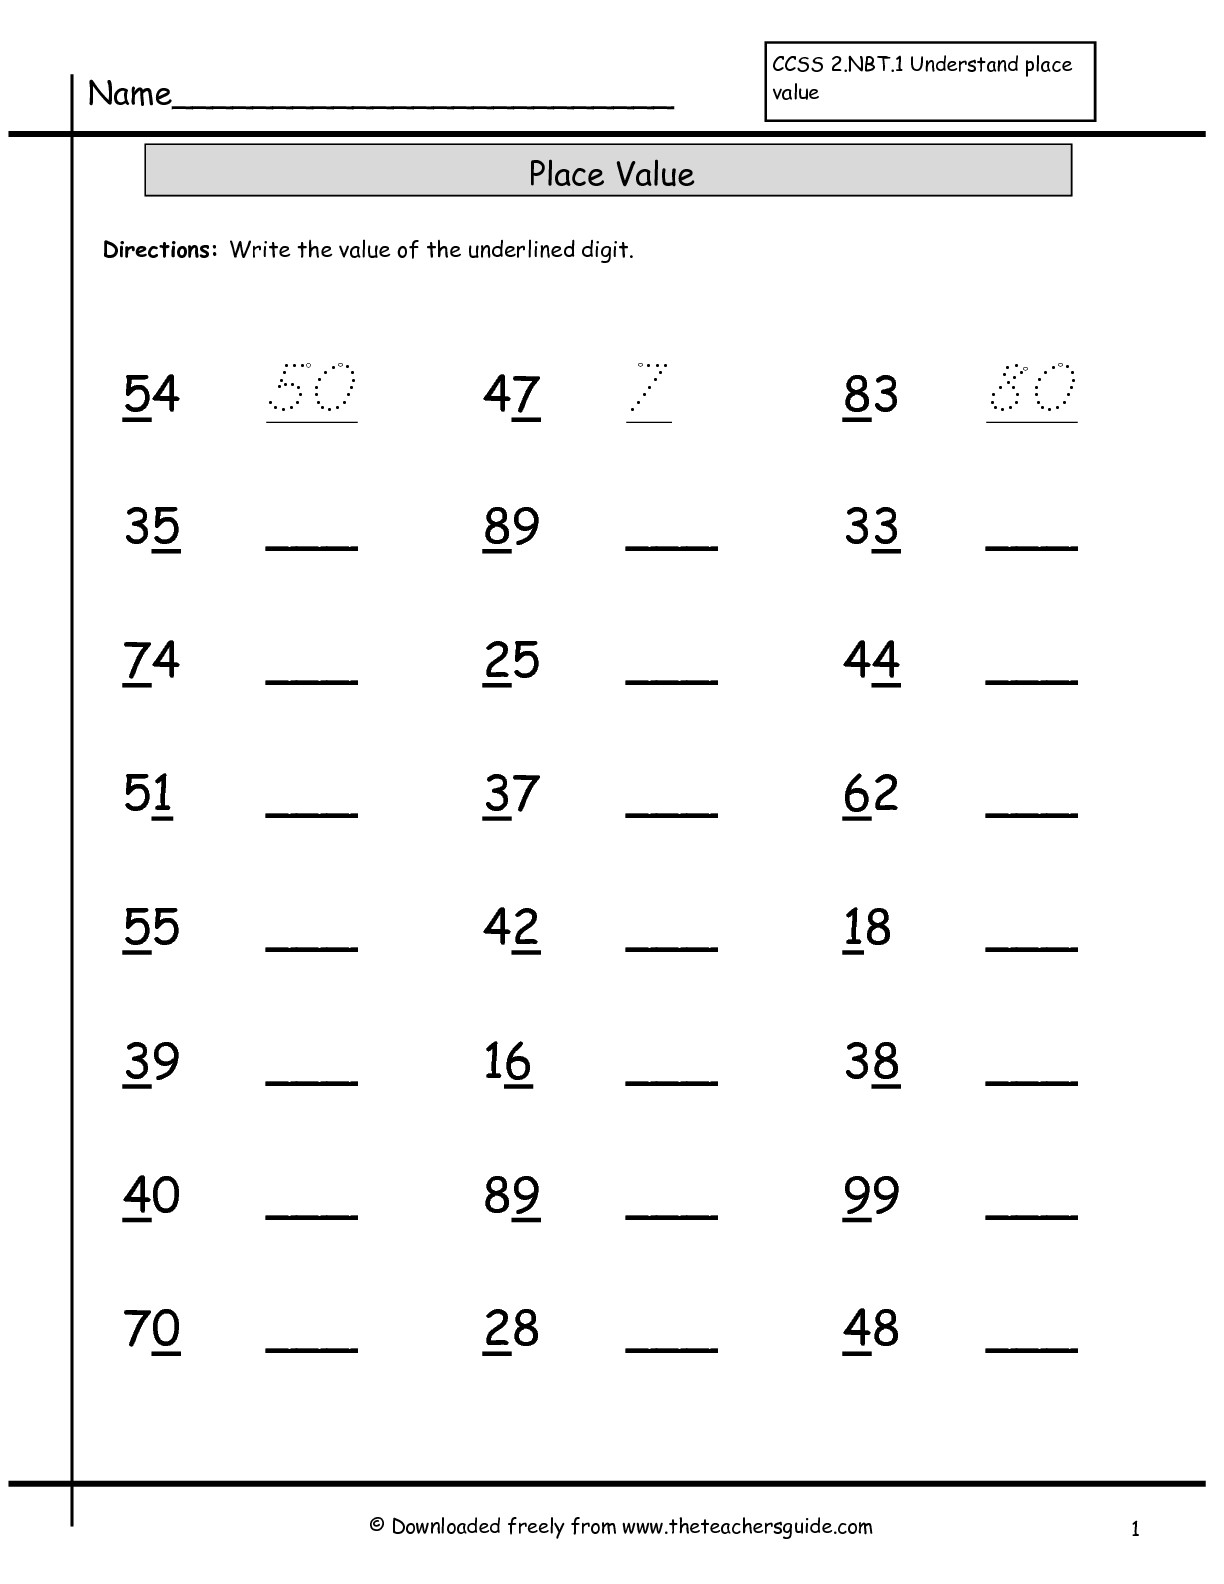 12 Best Images of School Worksheets 1st Grade Science